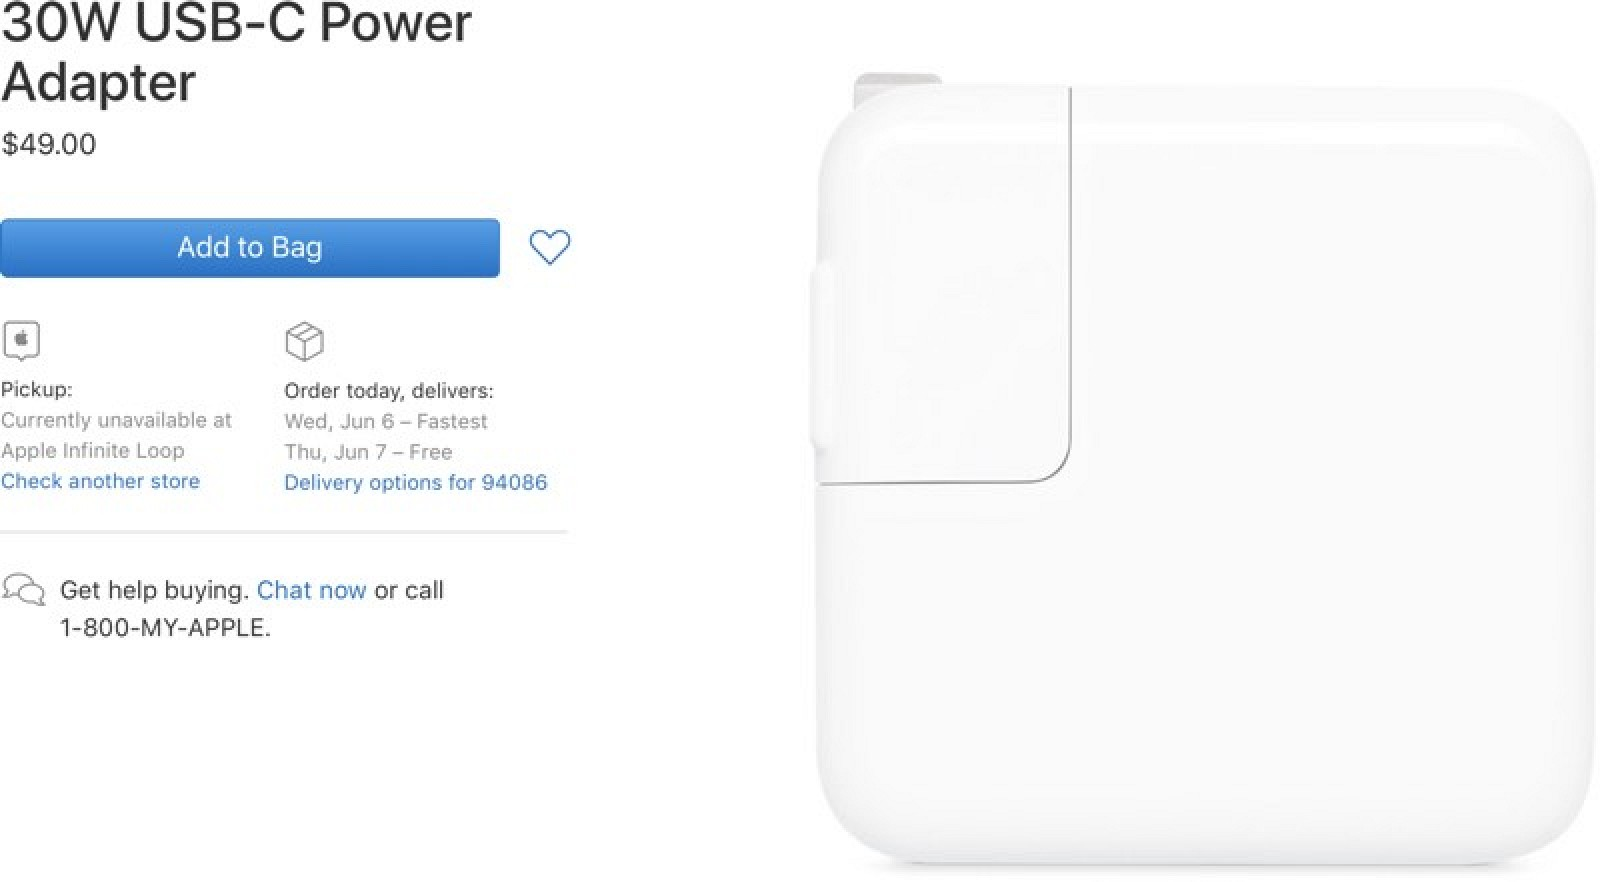 Apple Replaces 29W USB-C Power Adapter With New 30W